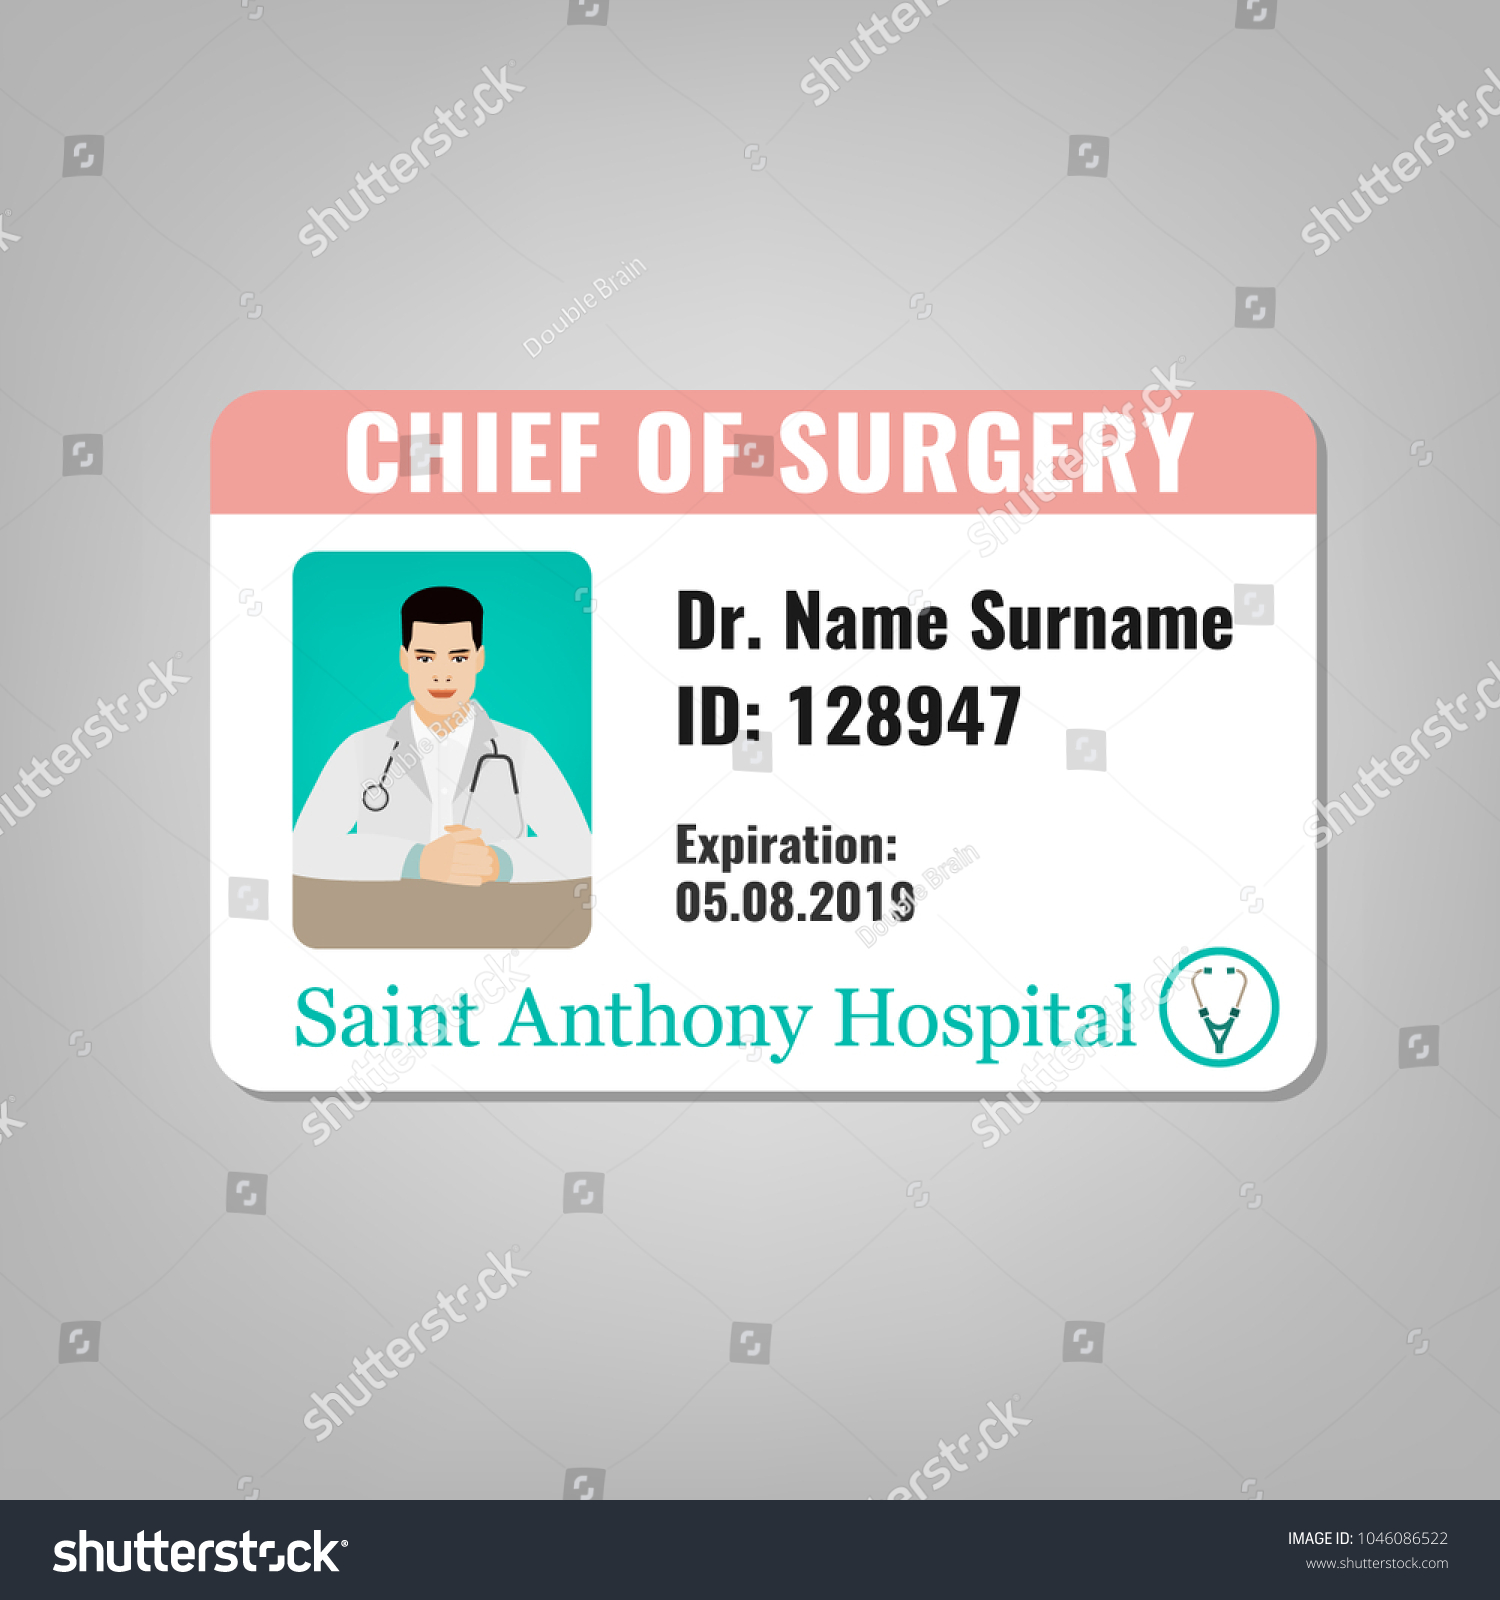 Doctors ID Card With House Surgeon Image Medical Specialist Badge Template For Medicine Emergency